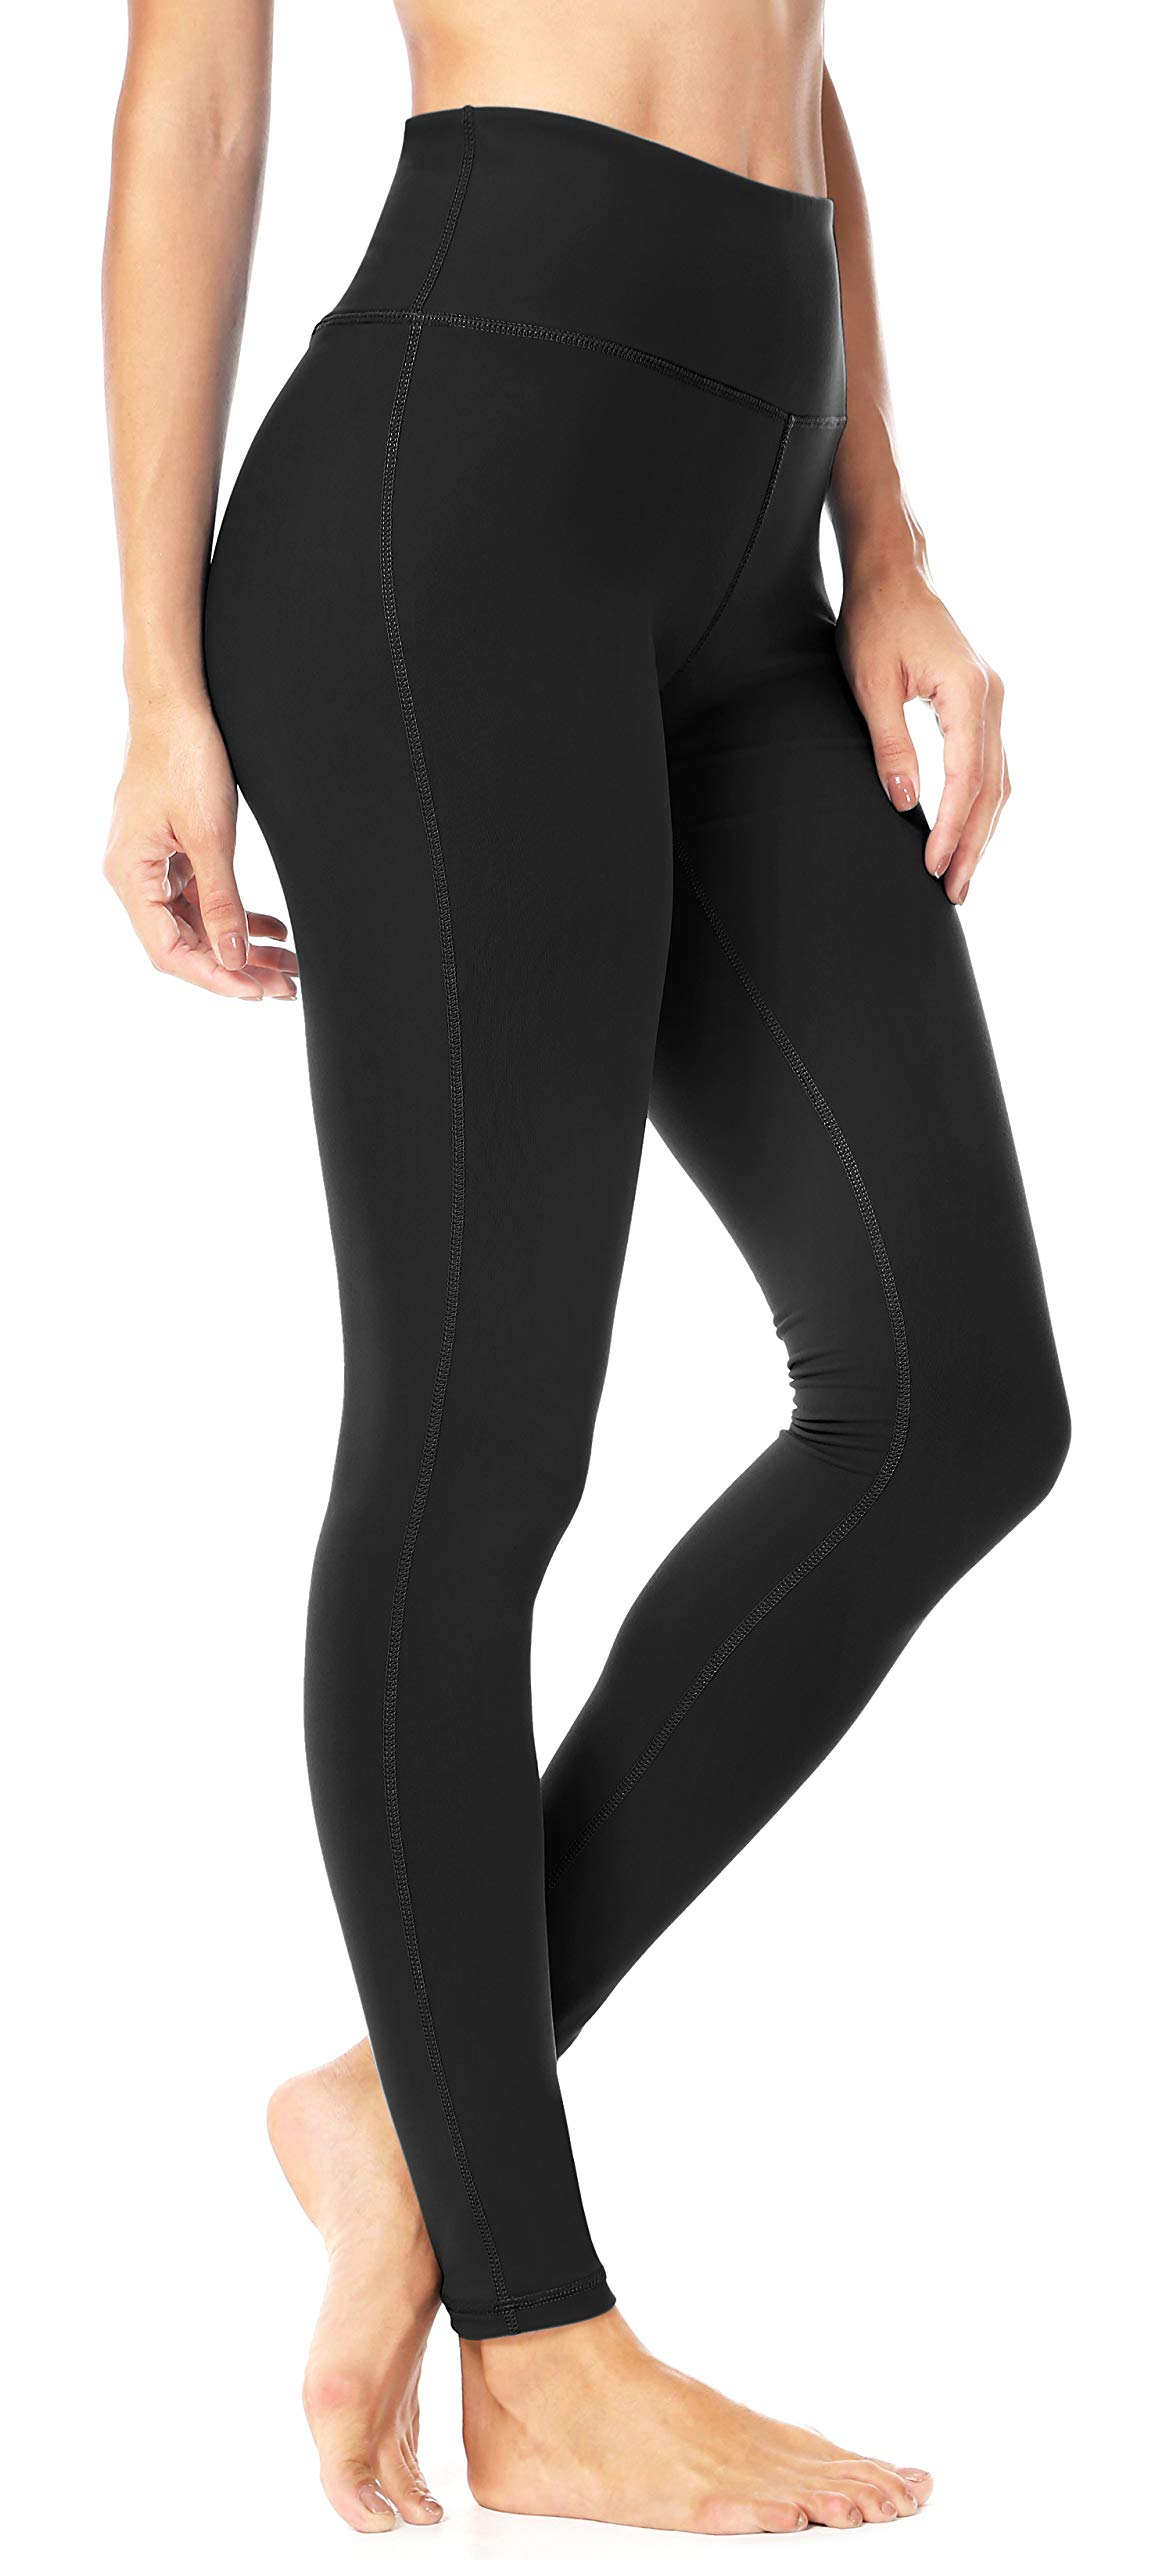 QUEENIEKE Women Yoga Leggings Workout Tights Running Pants Size L Color Midnight Black Long